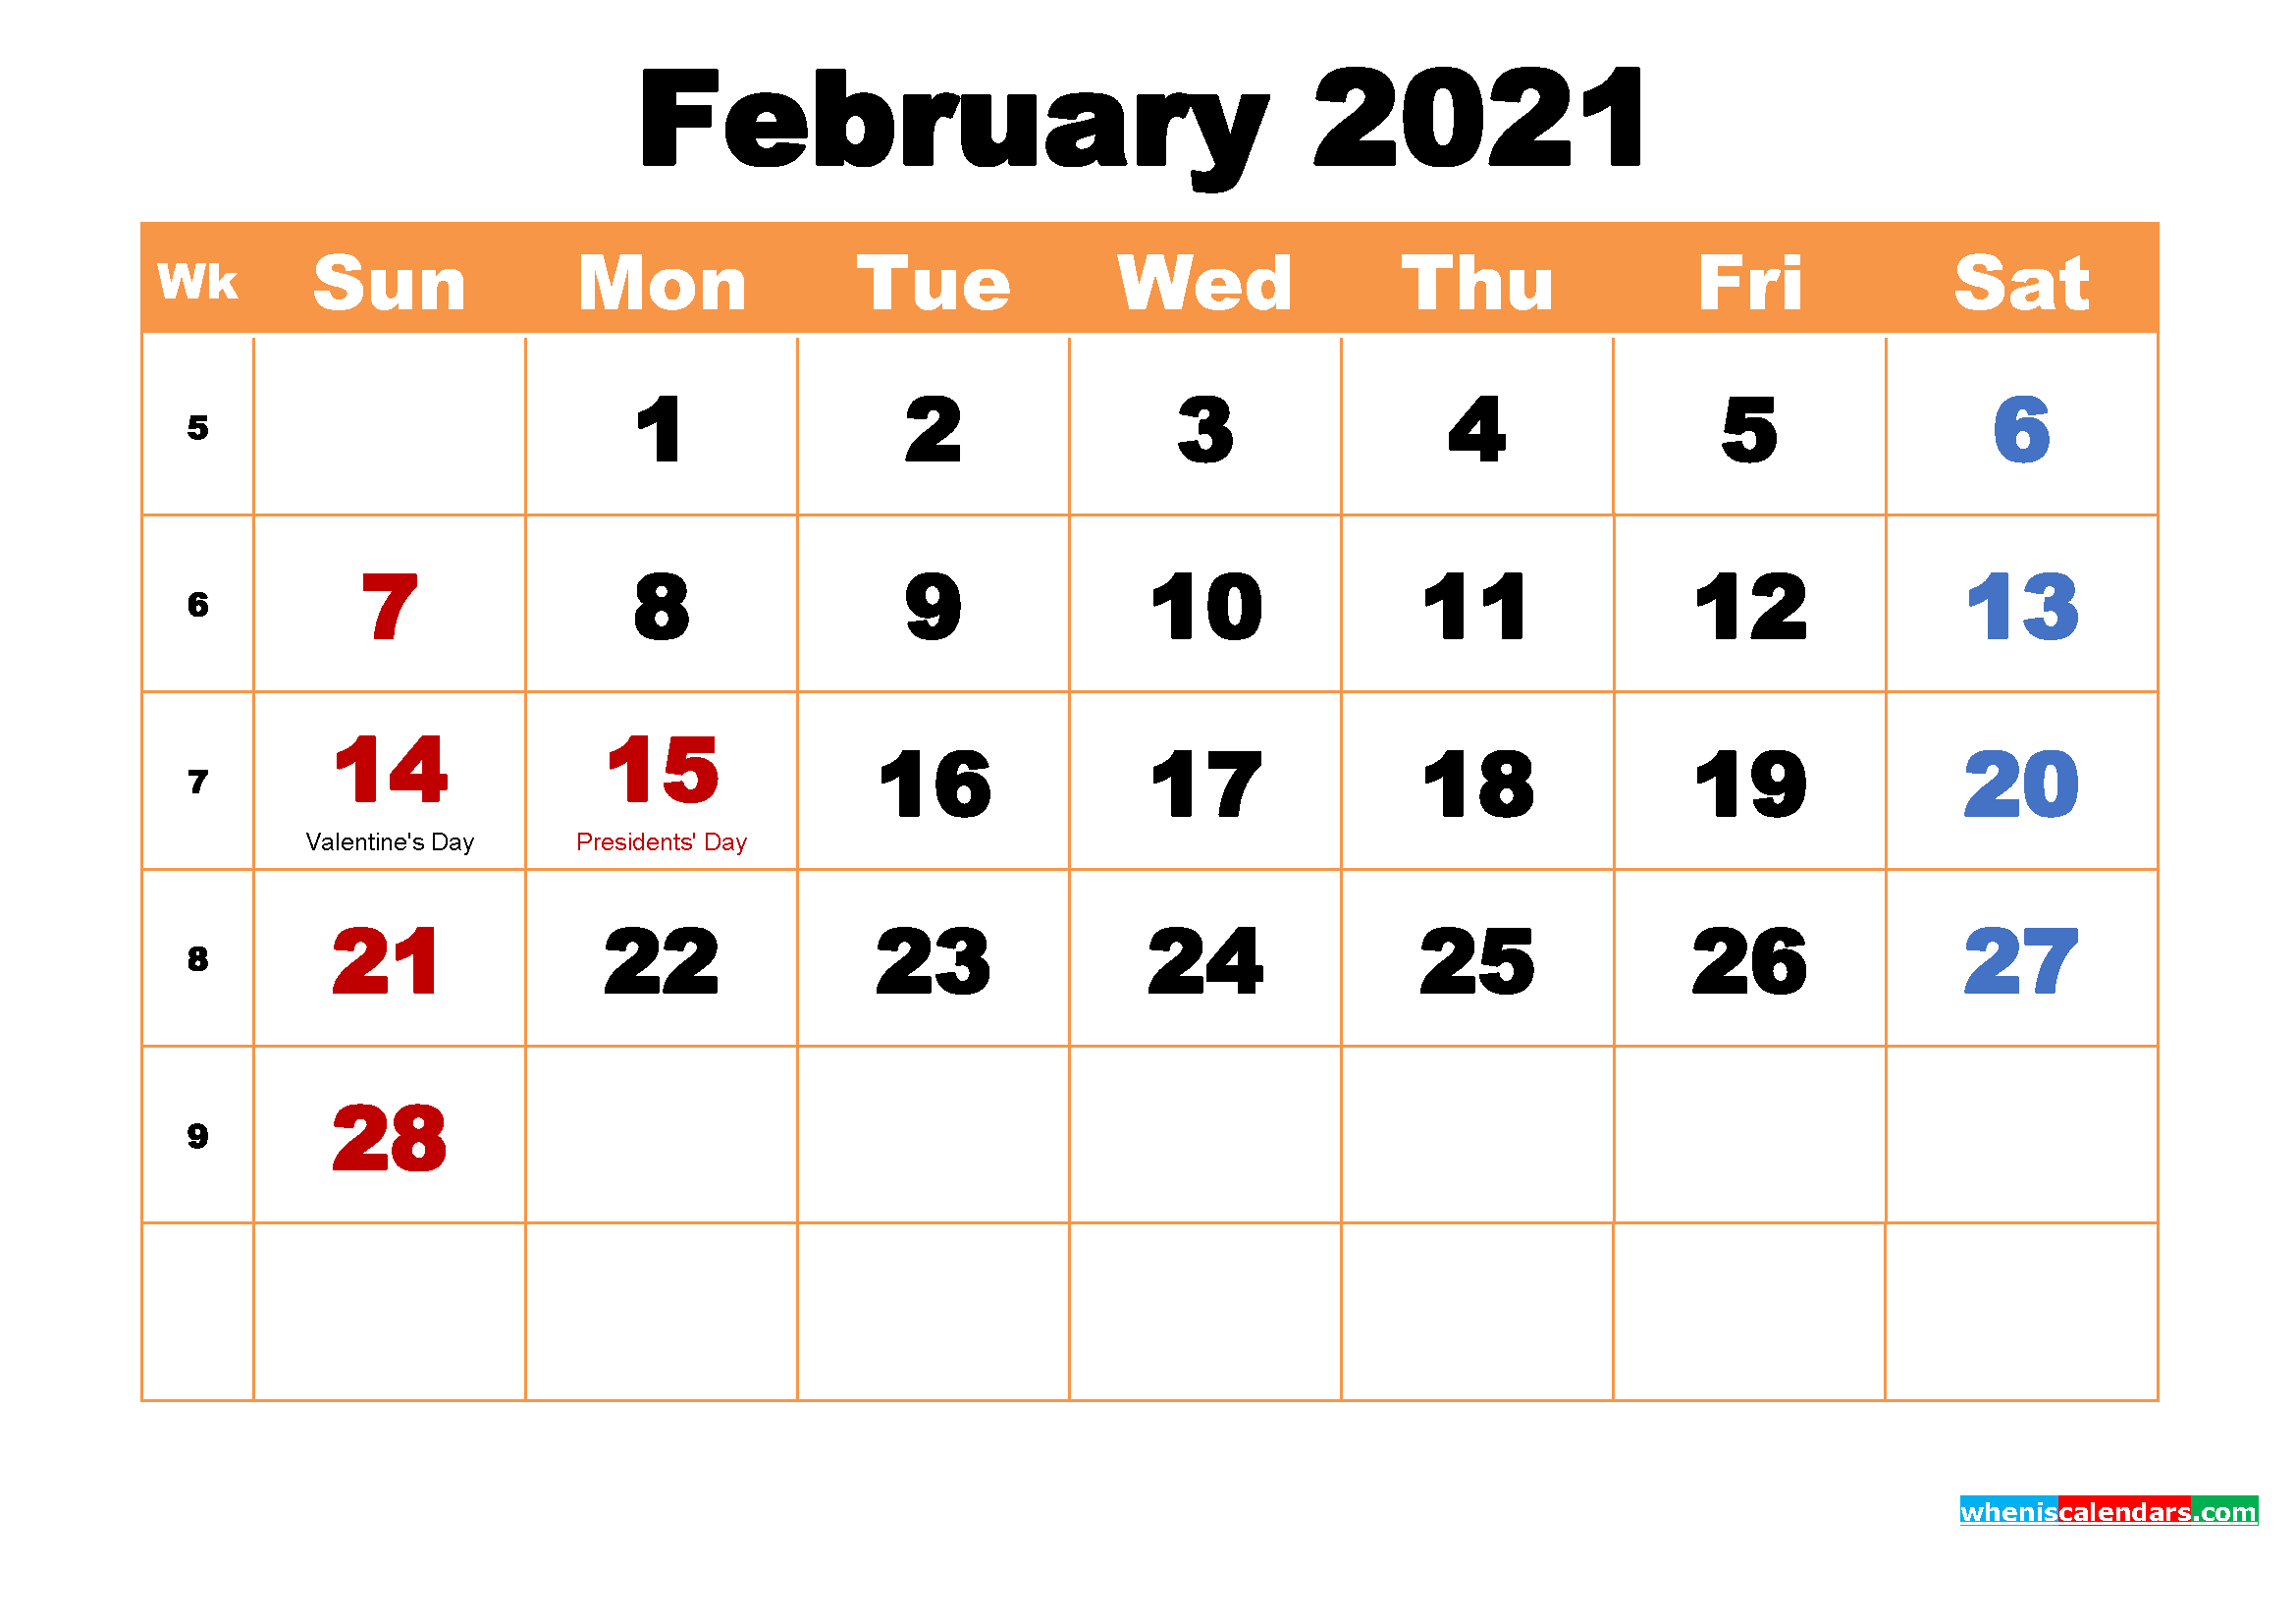 February 2021 Desktop Calendar Free Download